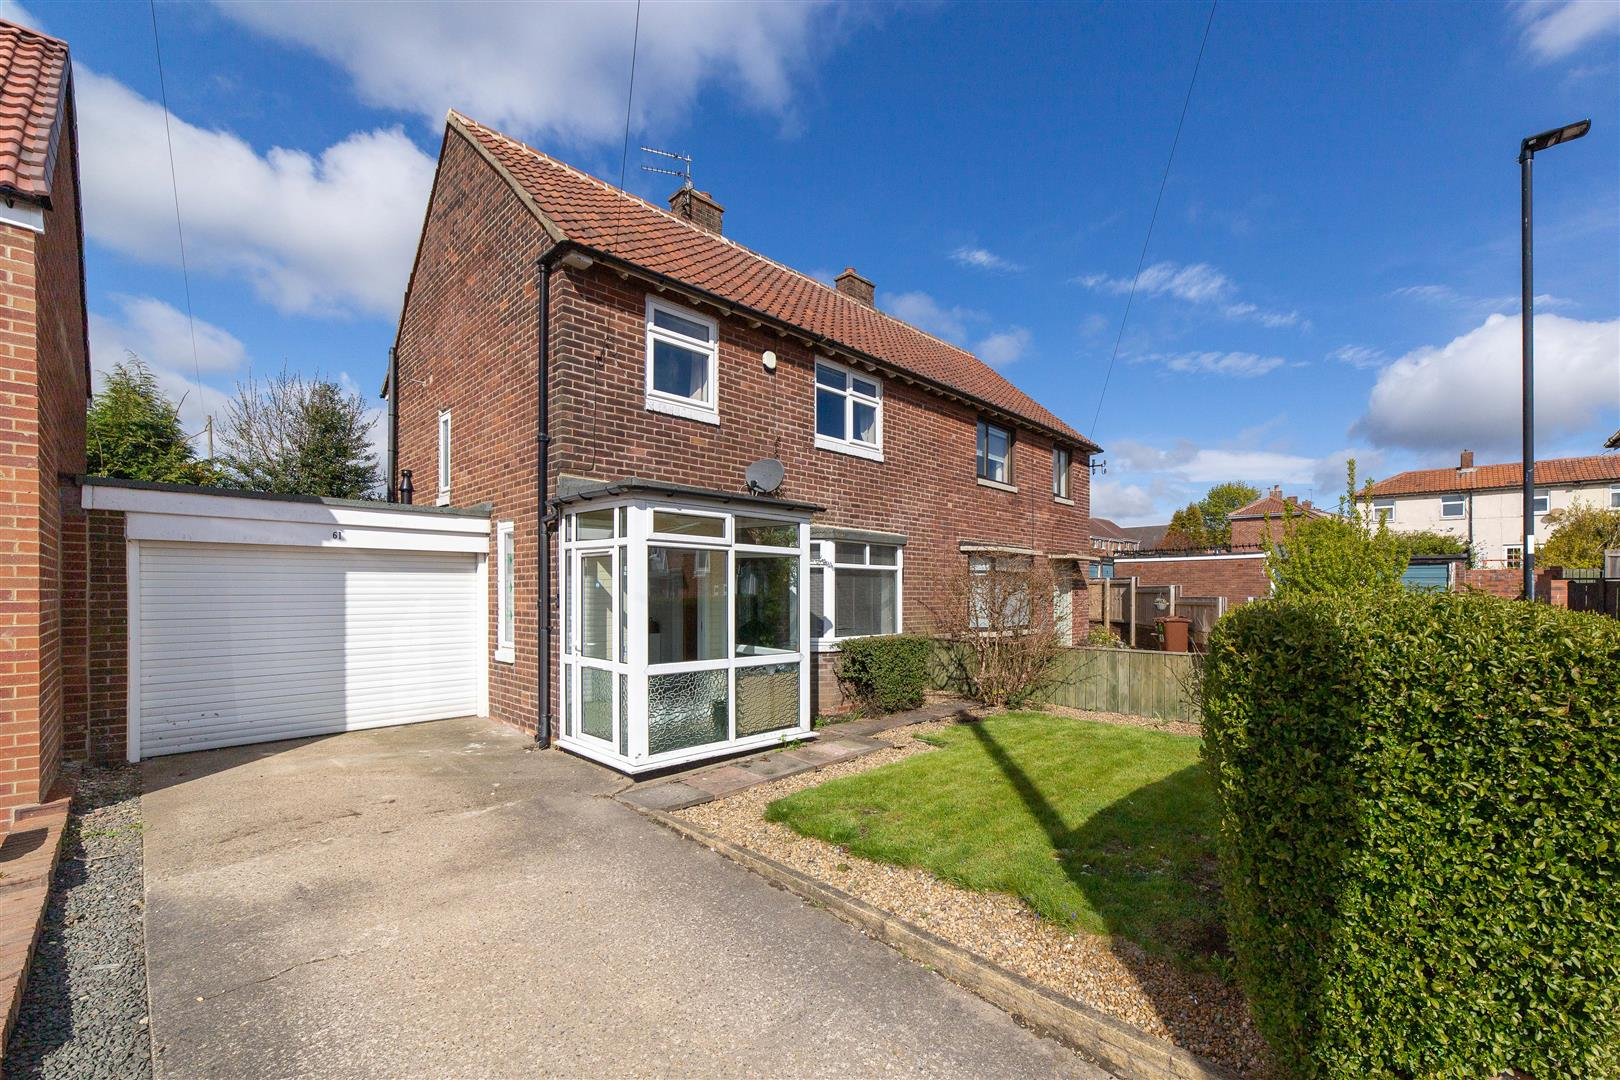 3 bed semi-detached house for sale in Whitgrave Road, Kenton - Property Image 1